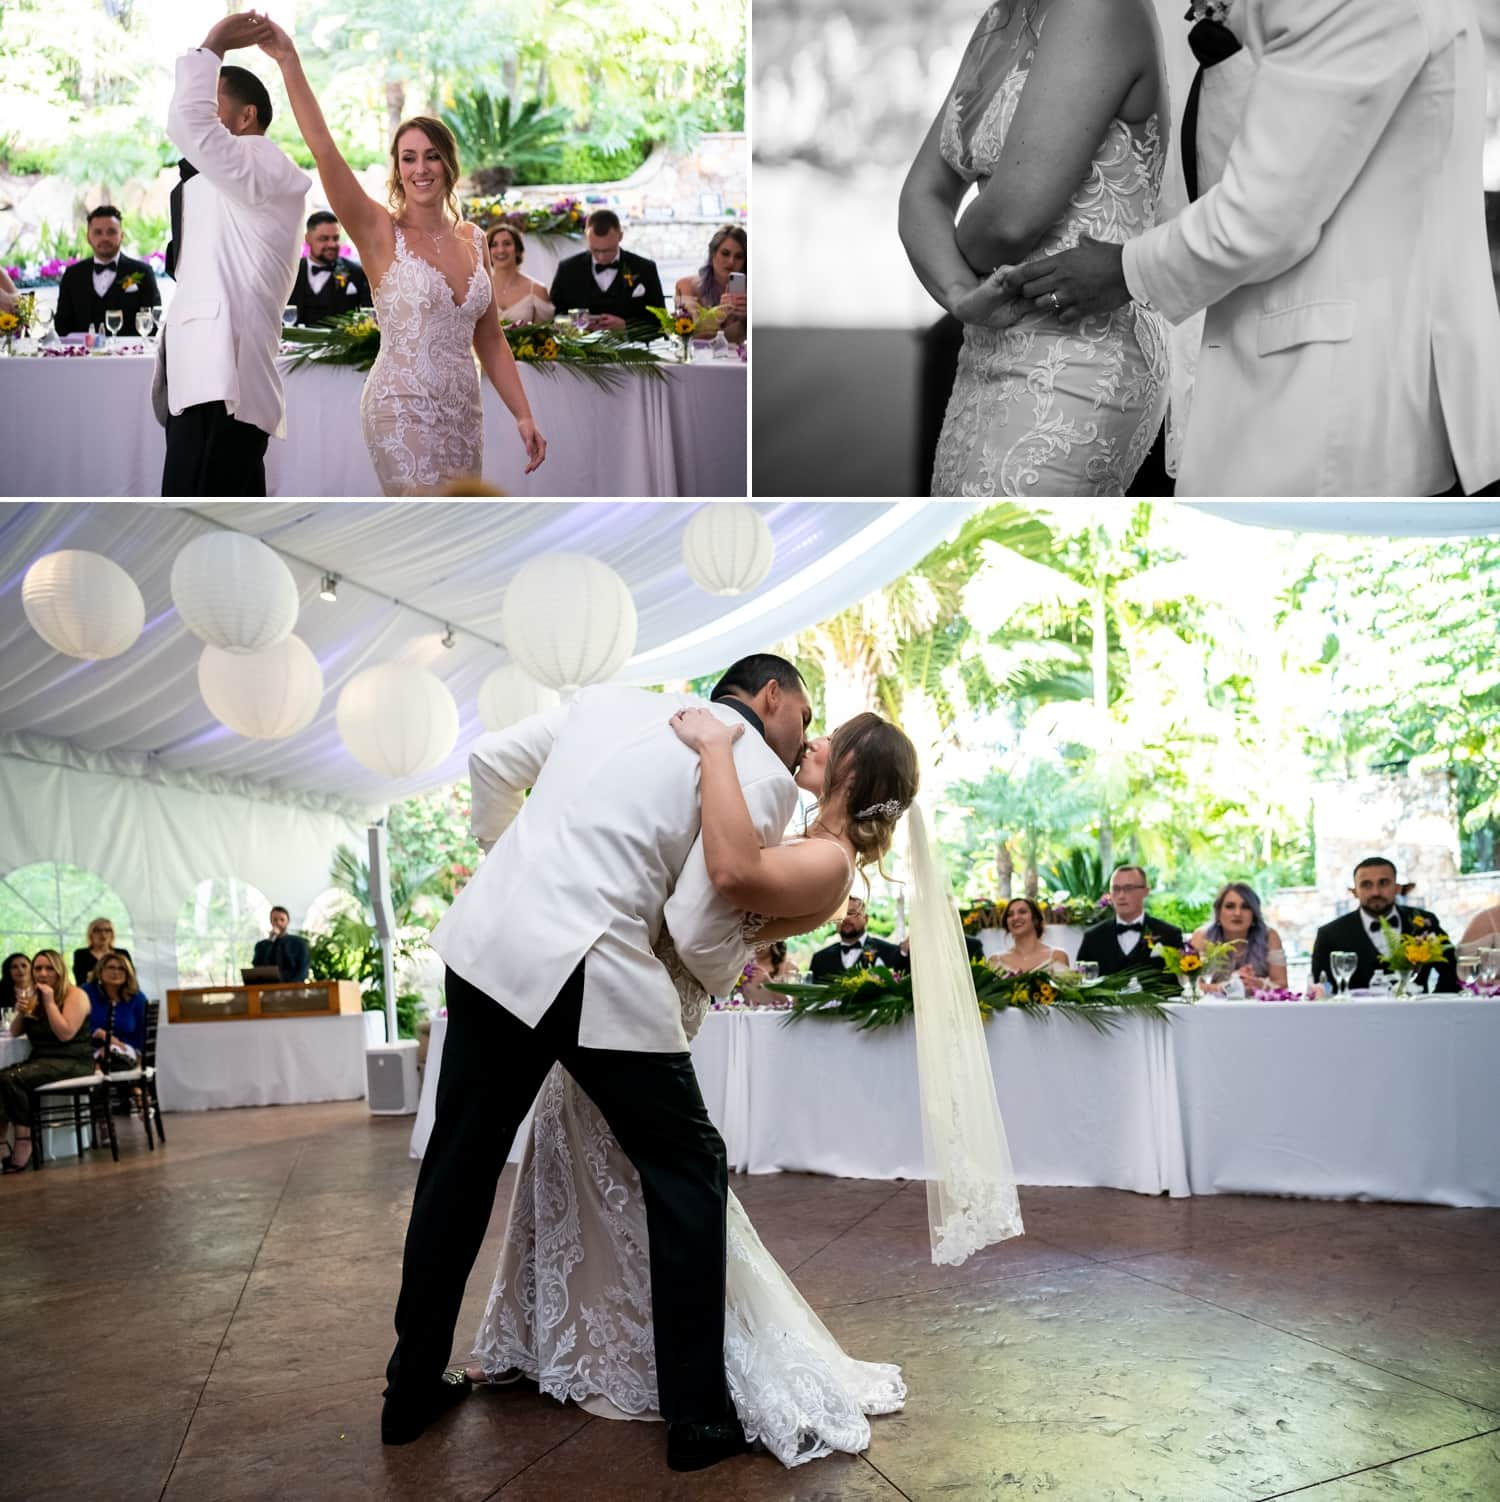 Bride and groom having their first dance at their wedding.